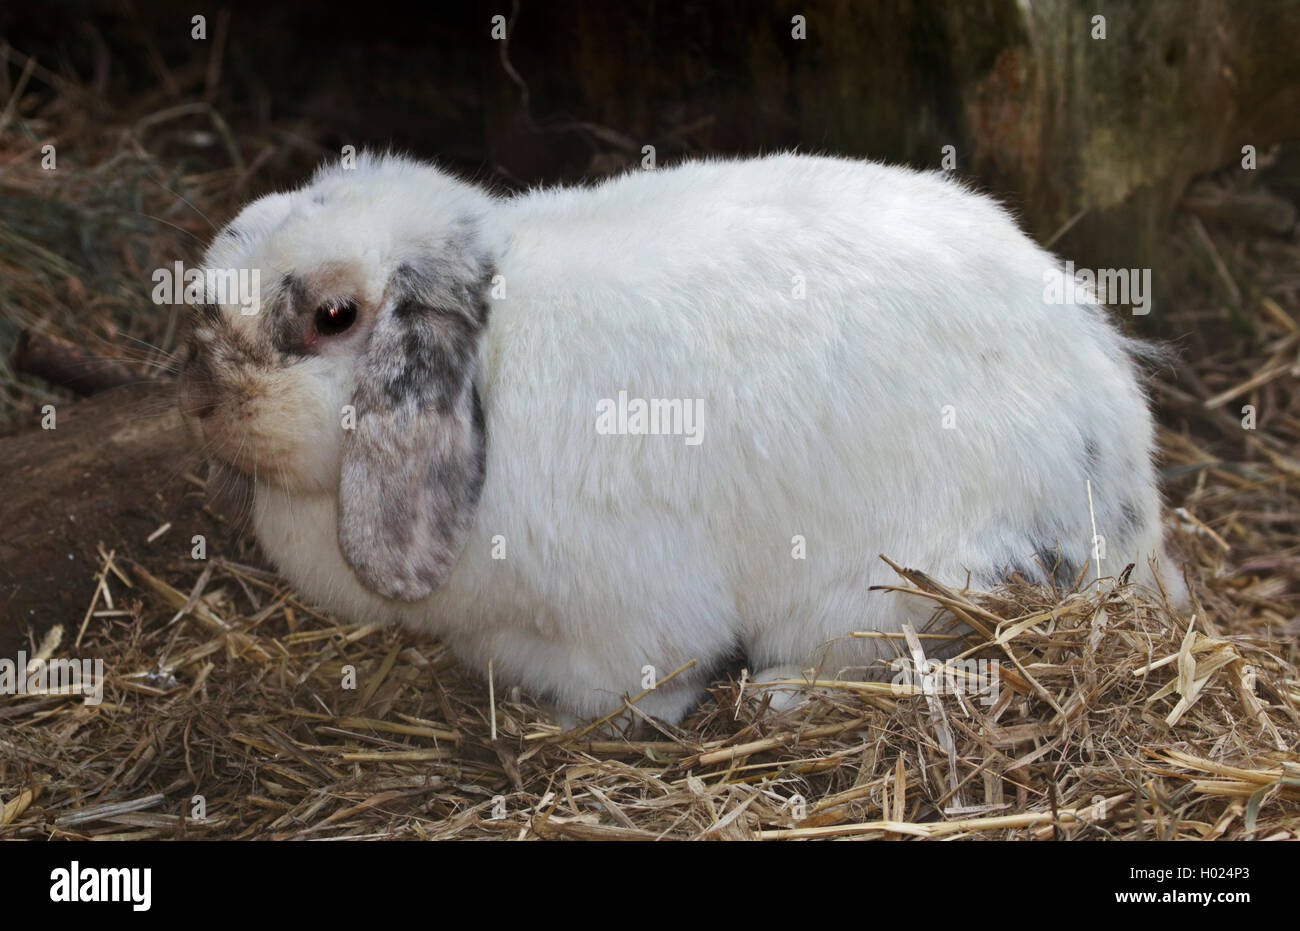 White Lop-Eared Rabbit - Stock Image